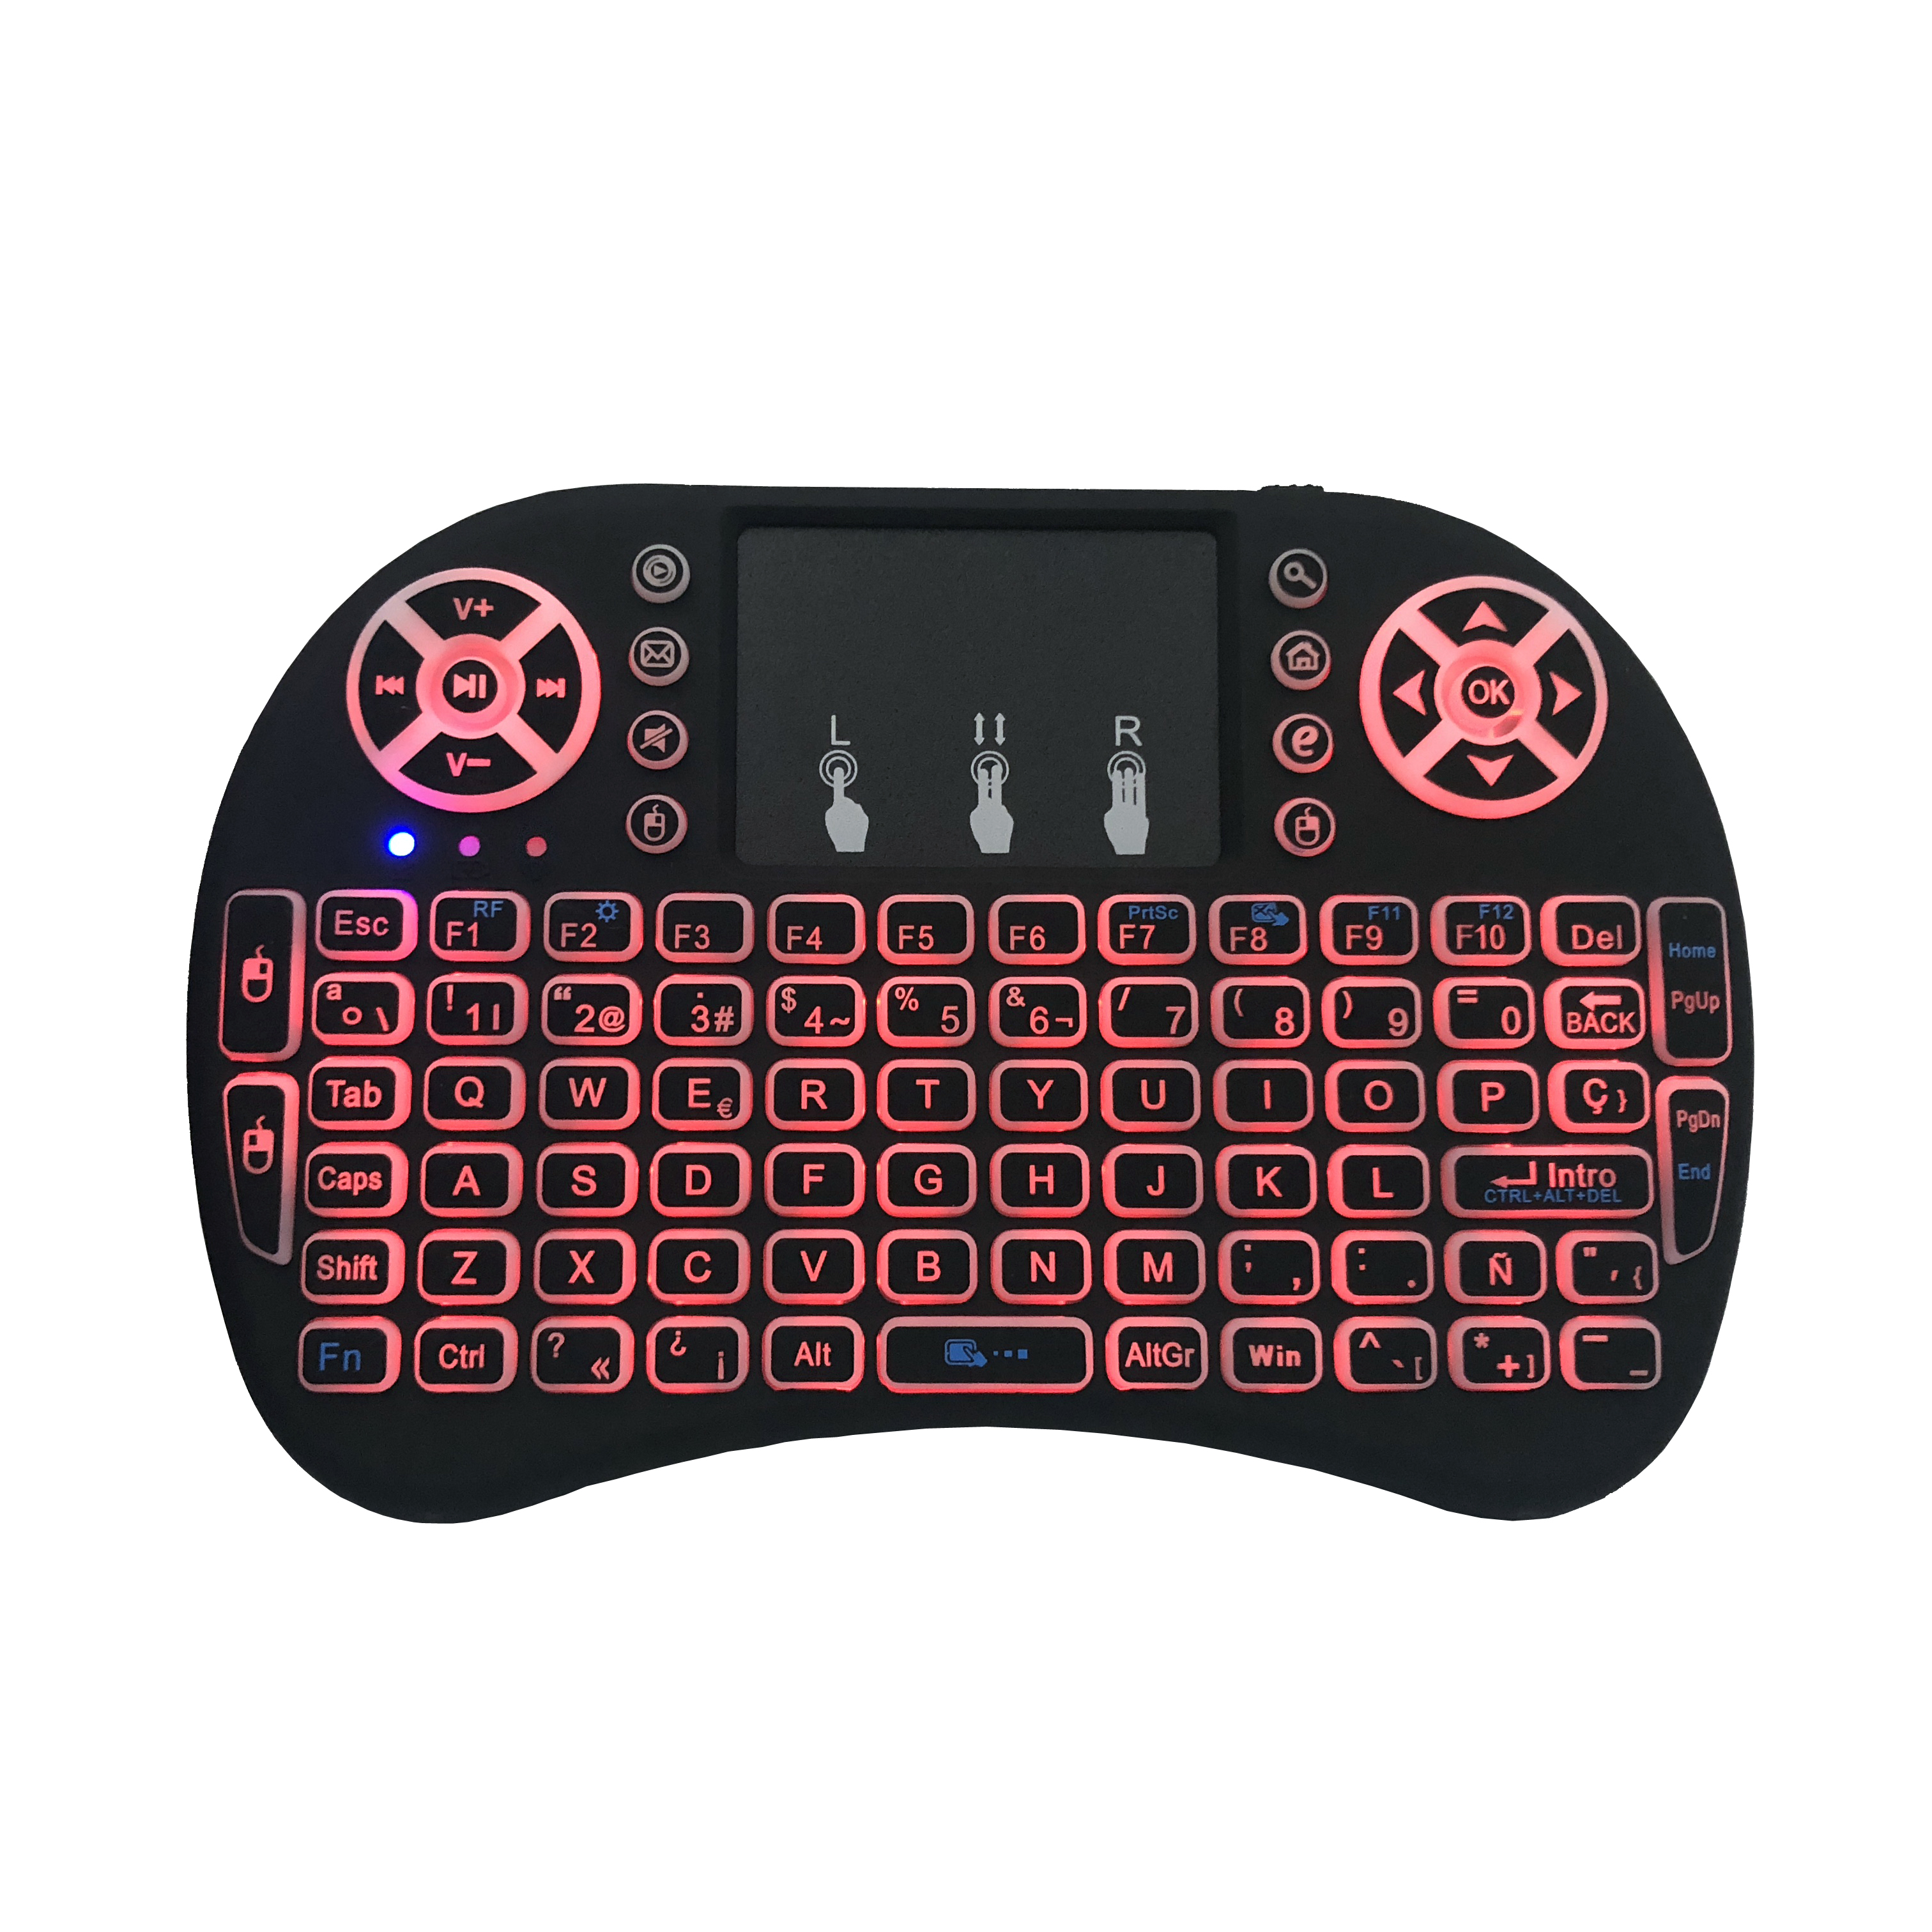 Image 2 - Spanish i8 mini keyboard 3 color backlit i8+ lithium battery backlight Air Mouse Remote Control Touchpad Handheld TV BOX Laptop-in Keyboards from Computer & Office